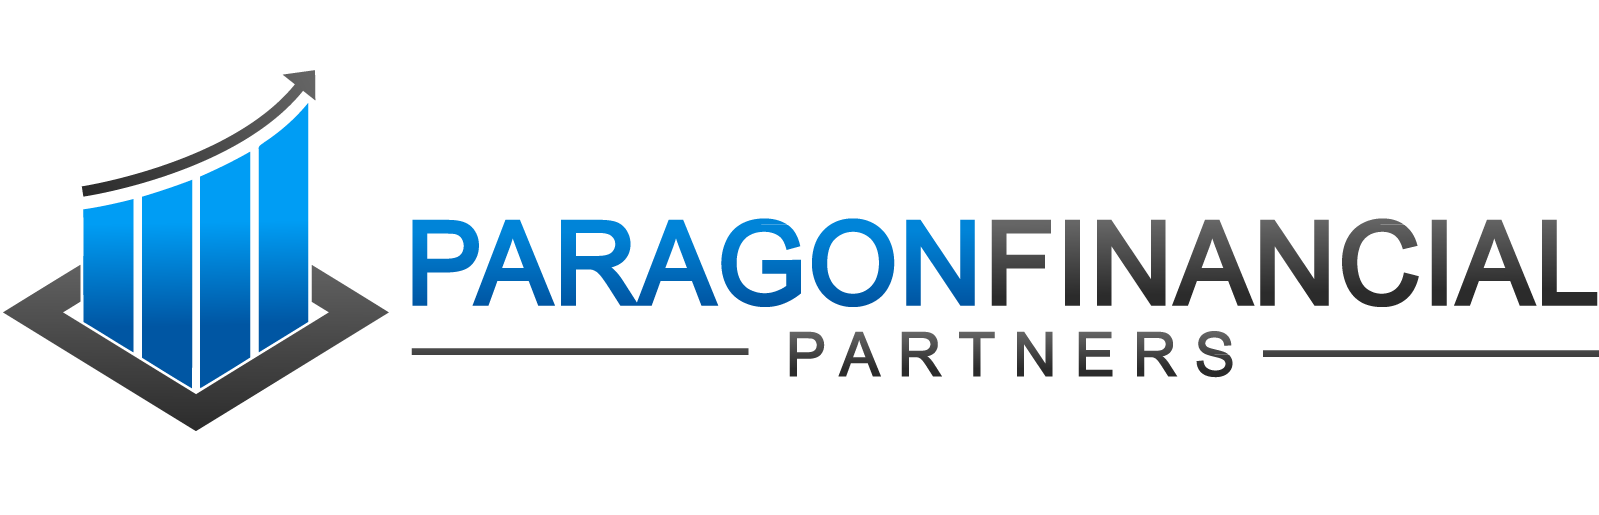 Paragon Financial Partners